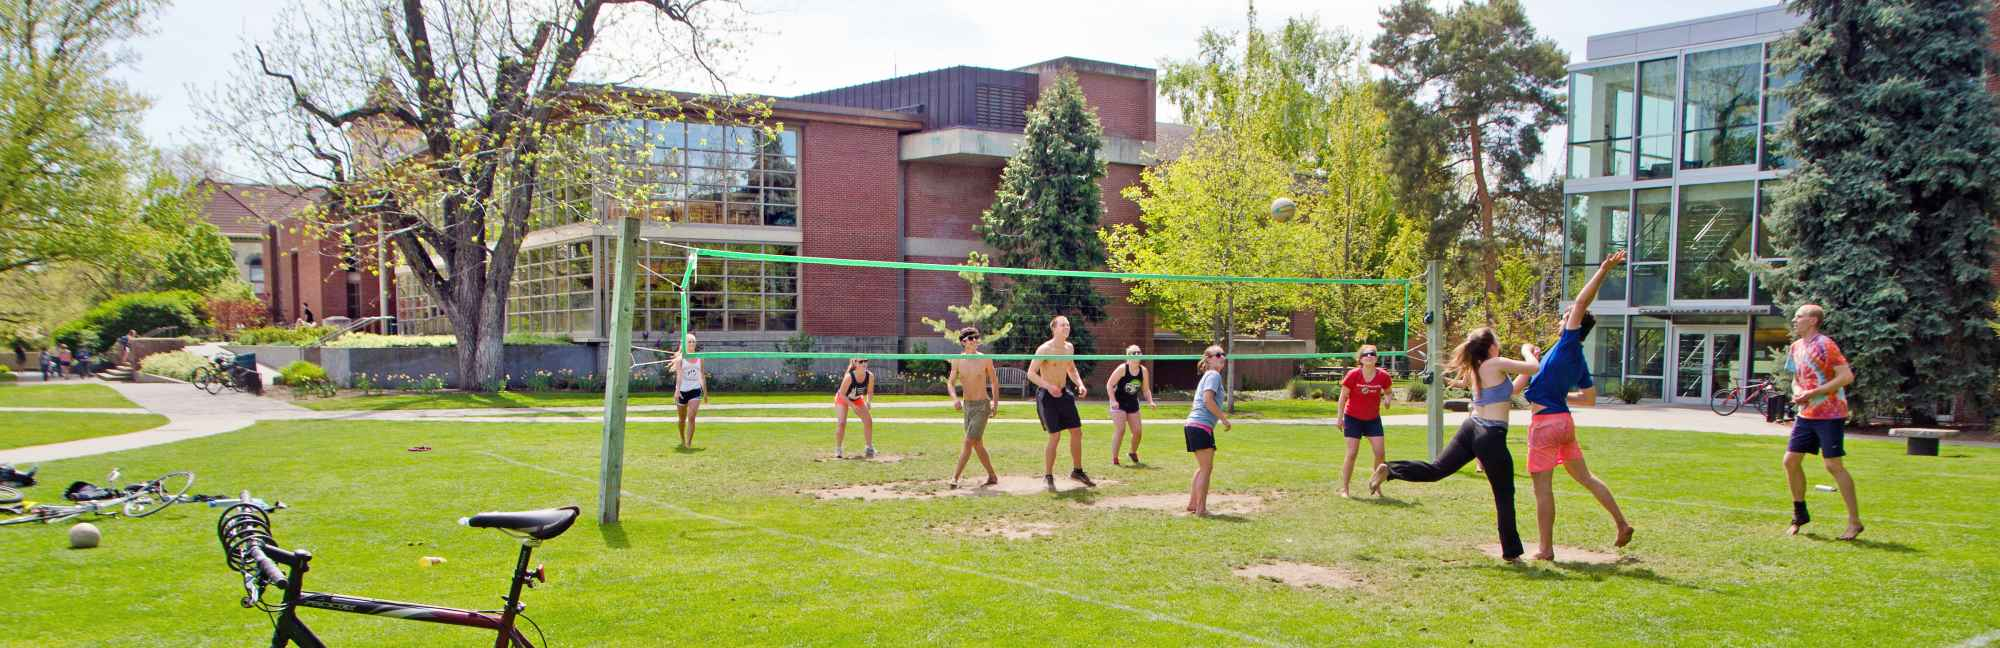 Volleyball on Ankeny Field